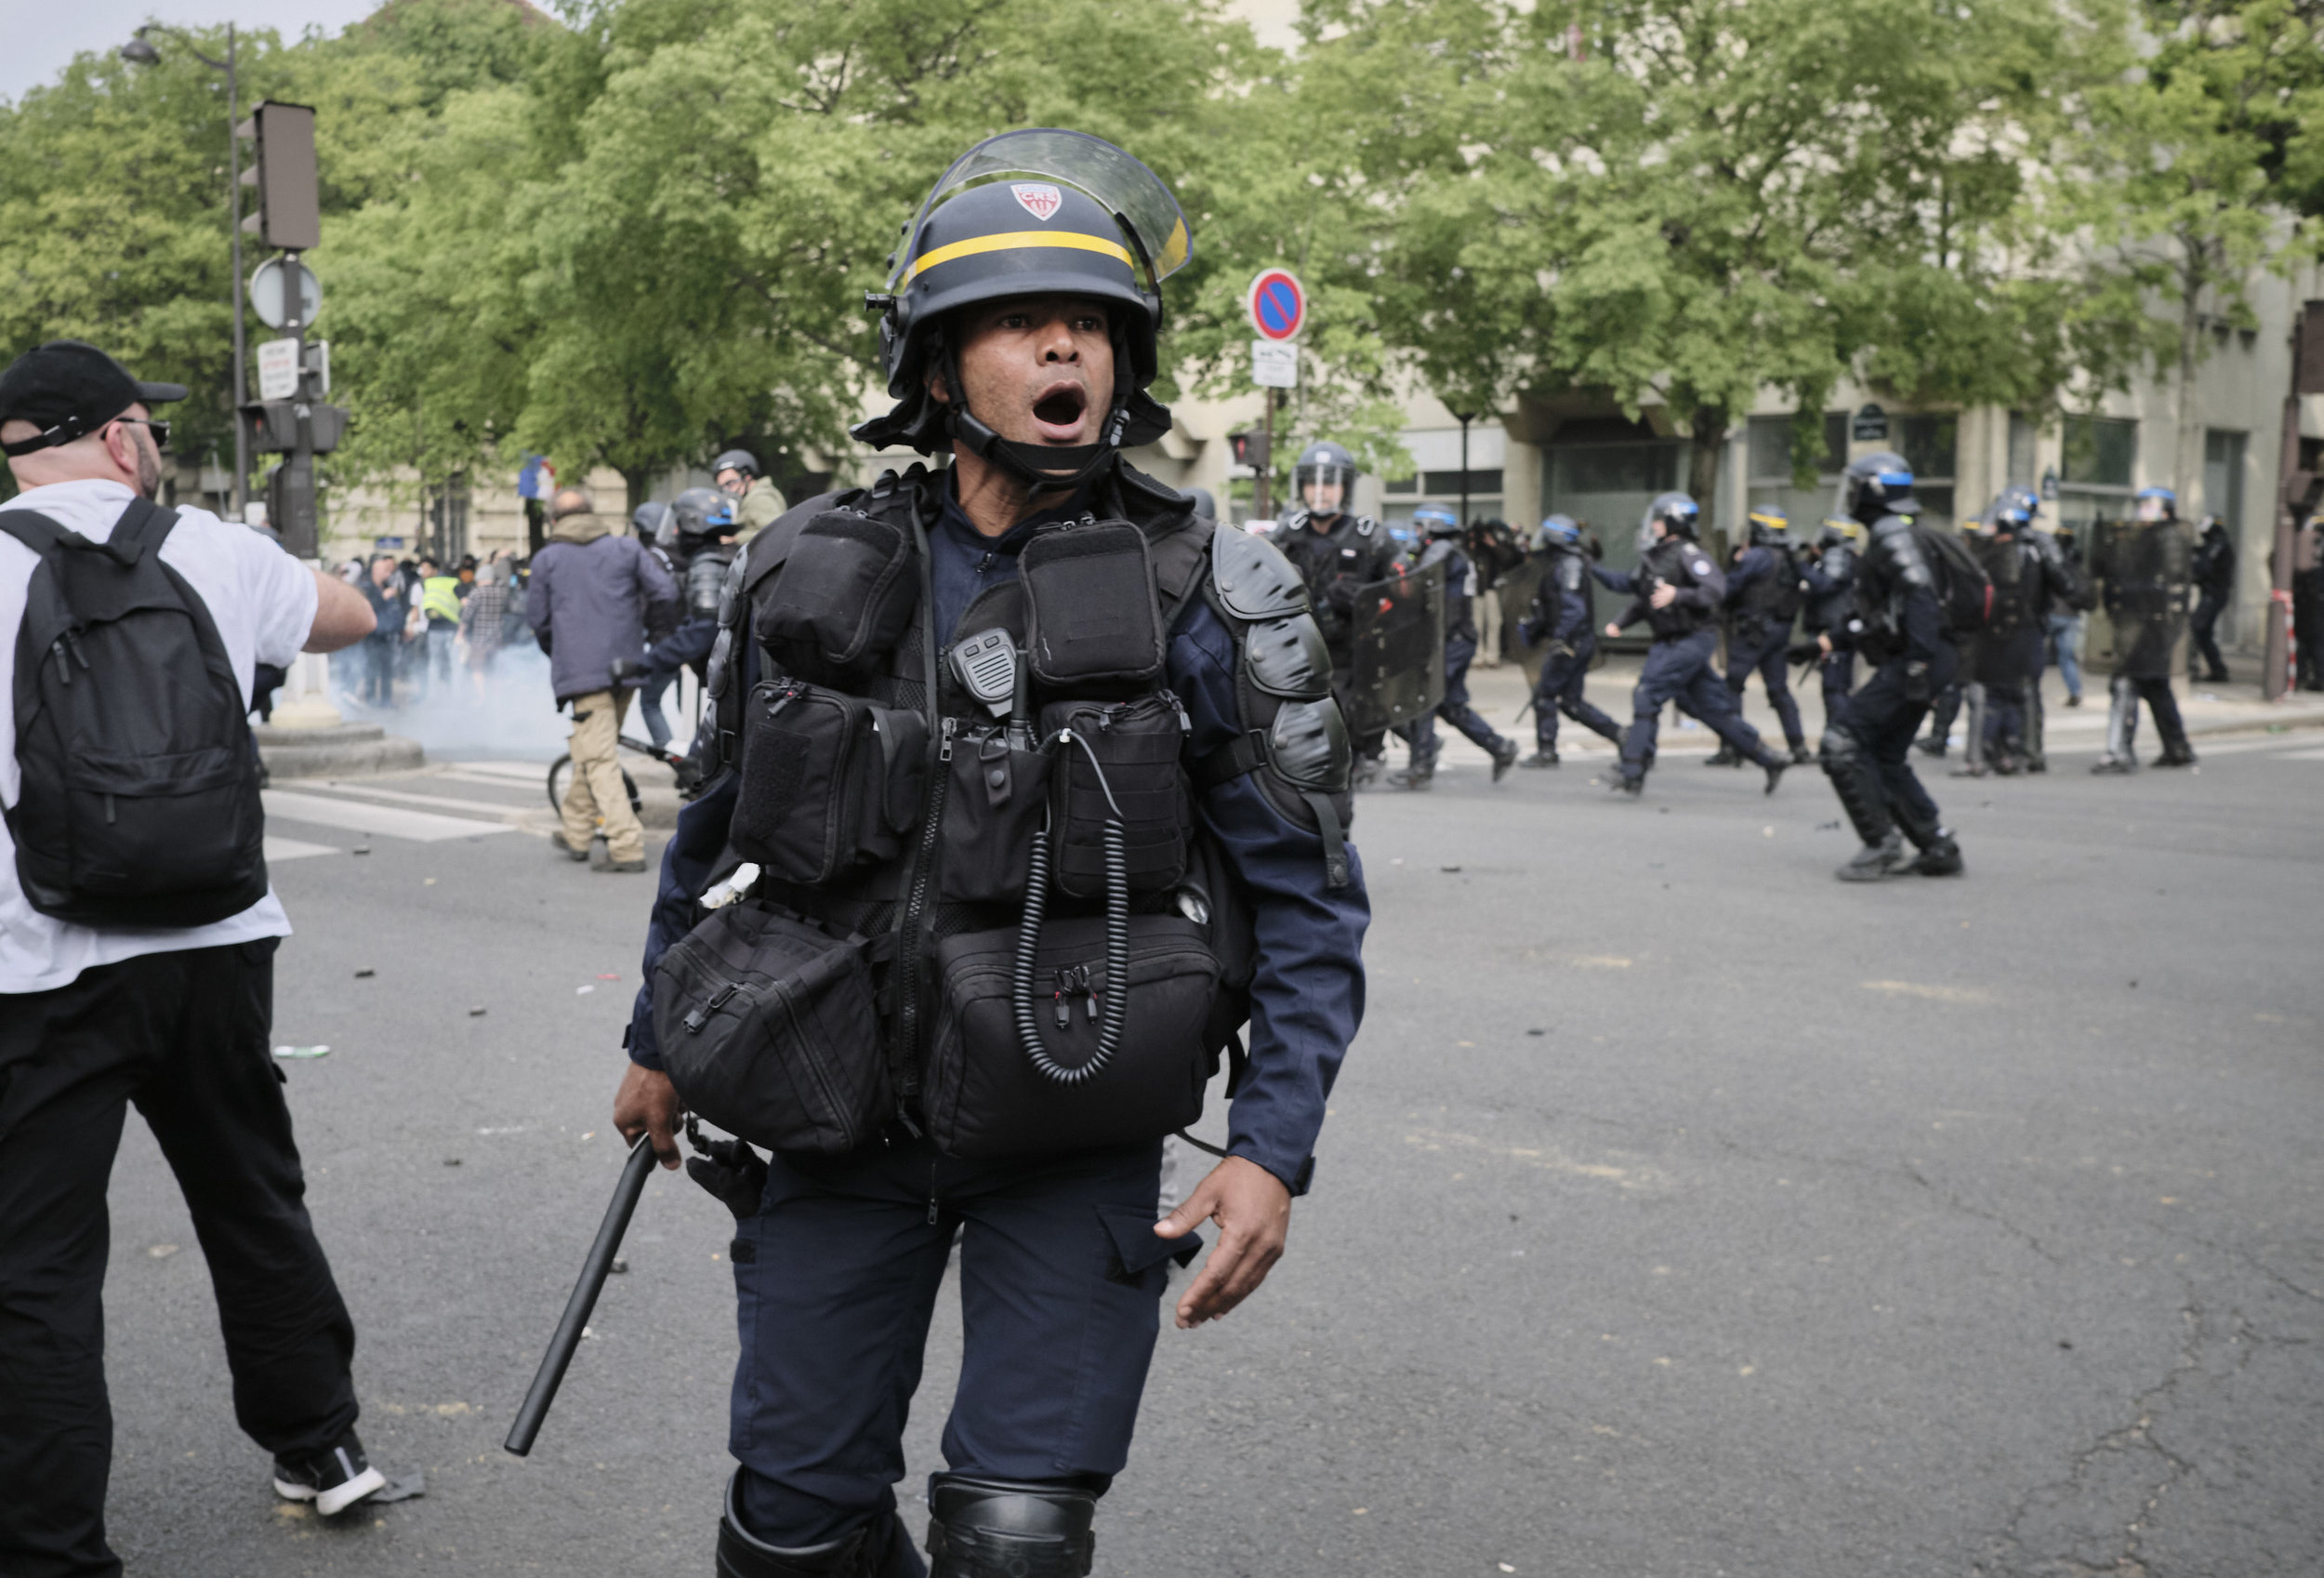 Enraged police officer during a confrontation with the protesters at The Avenue des Gobelins.